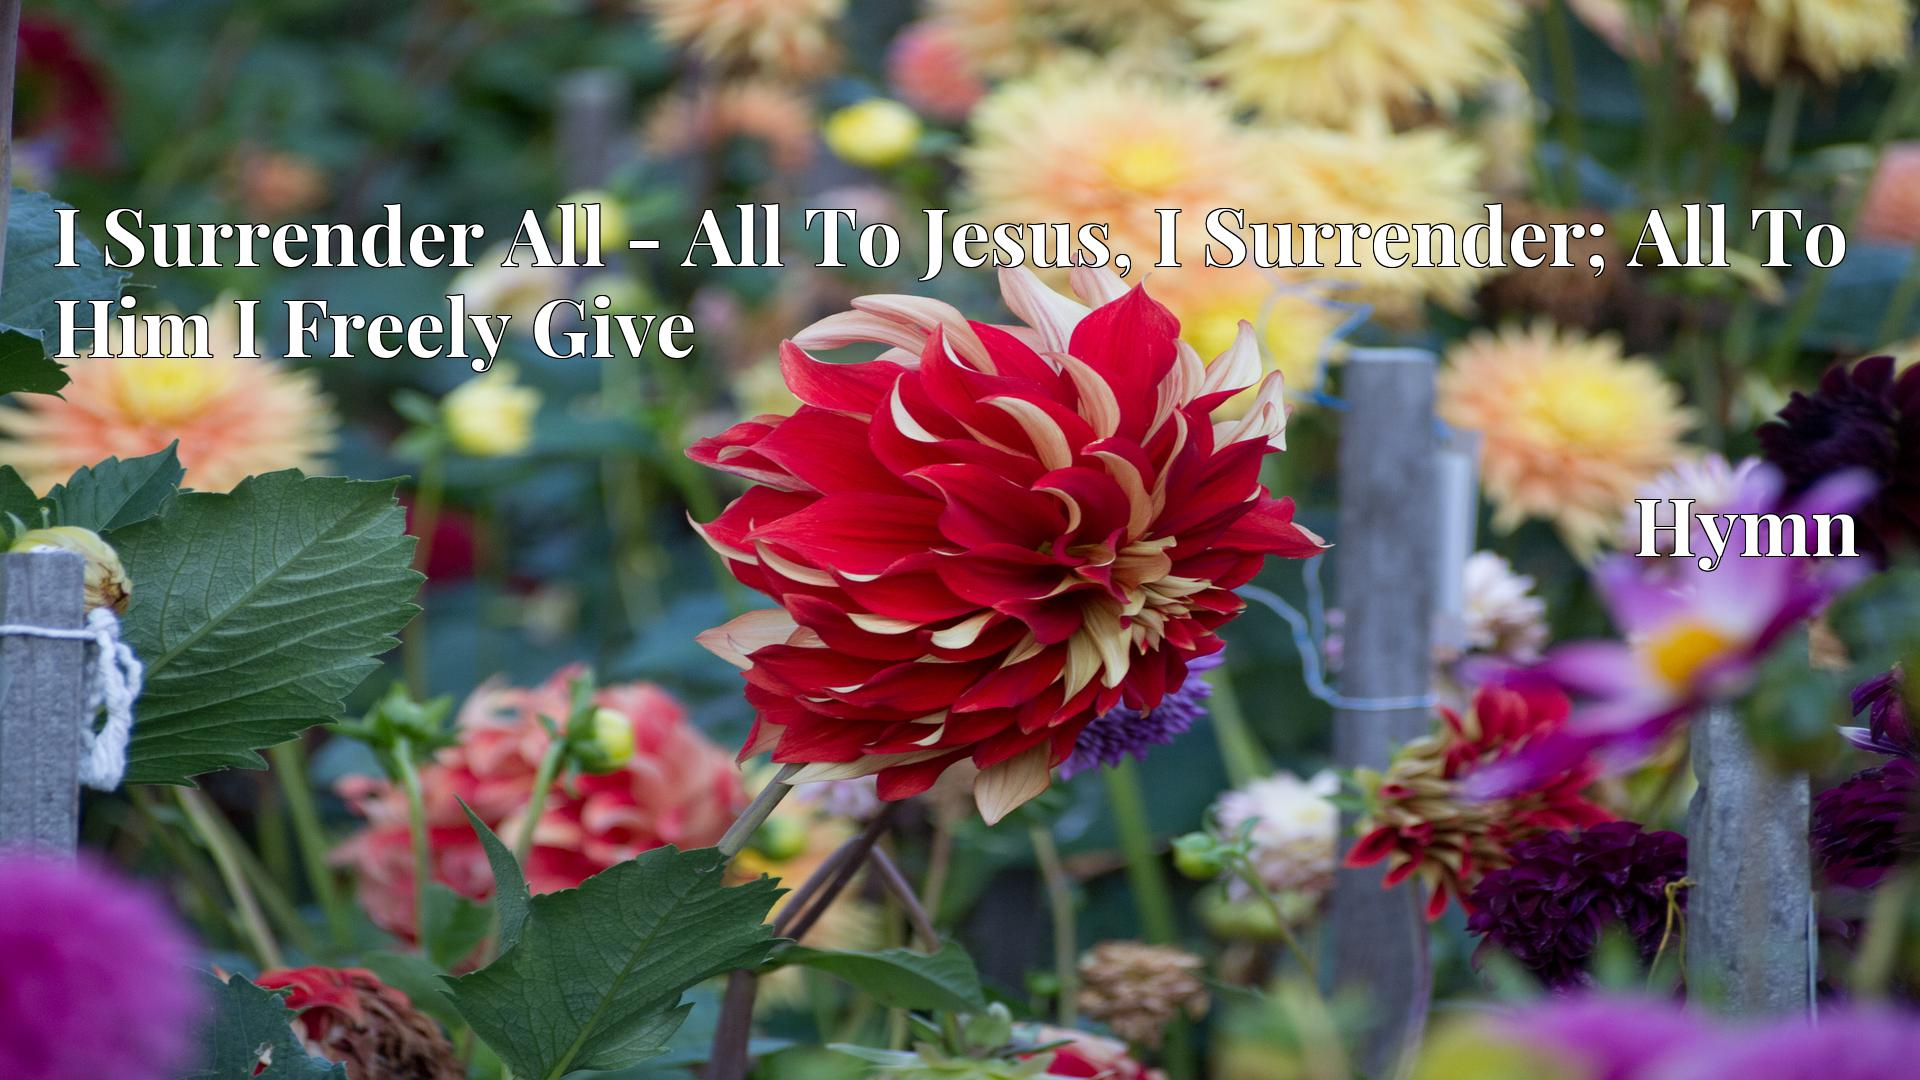 I Surrender All - All To Jesus, I Surrender; All To Him I Freely Give - Hymn